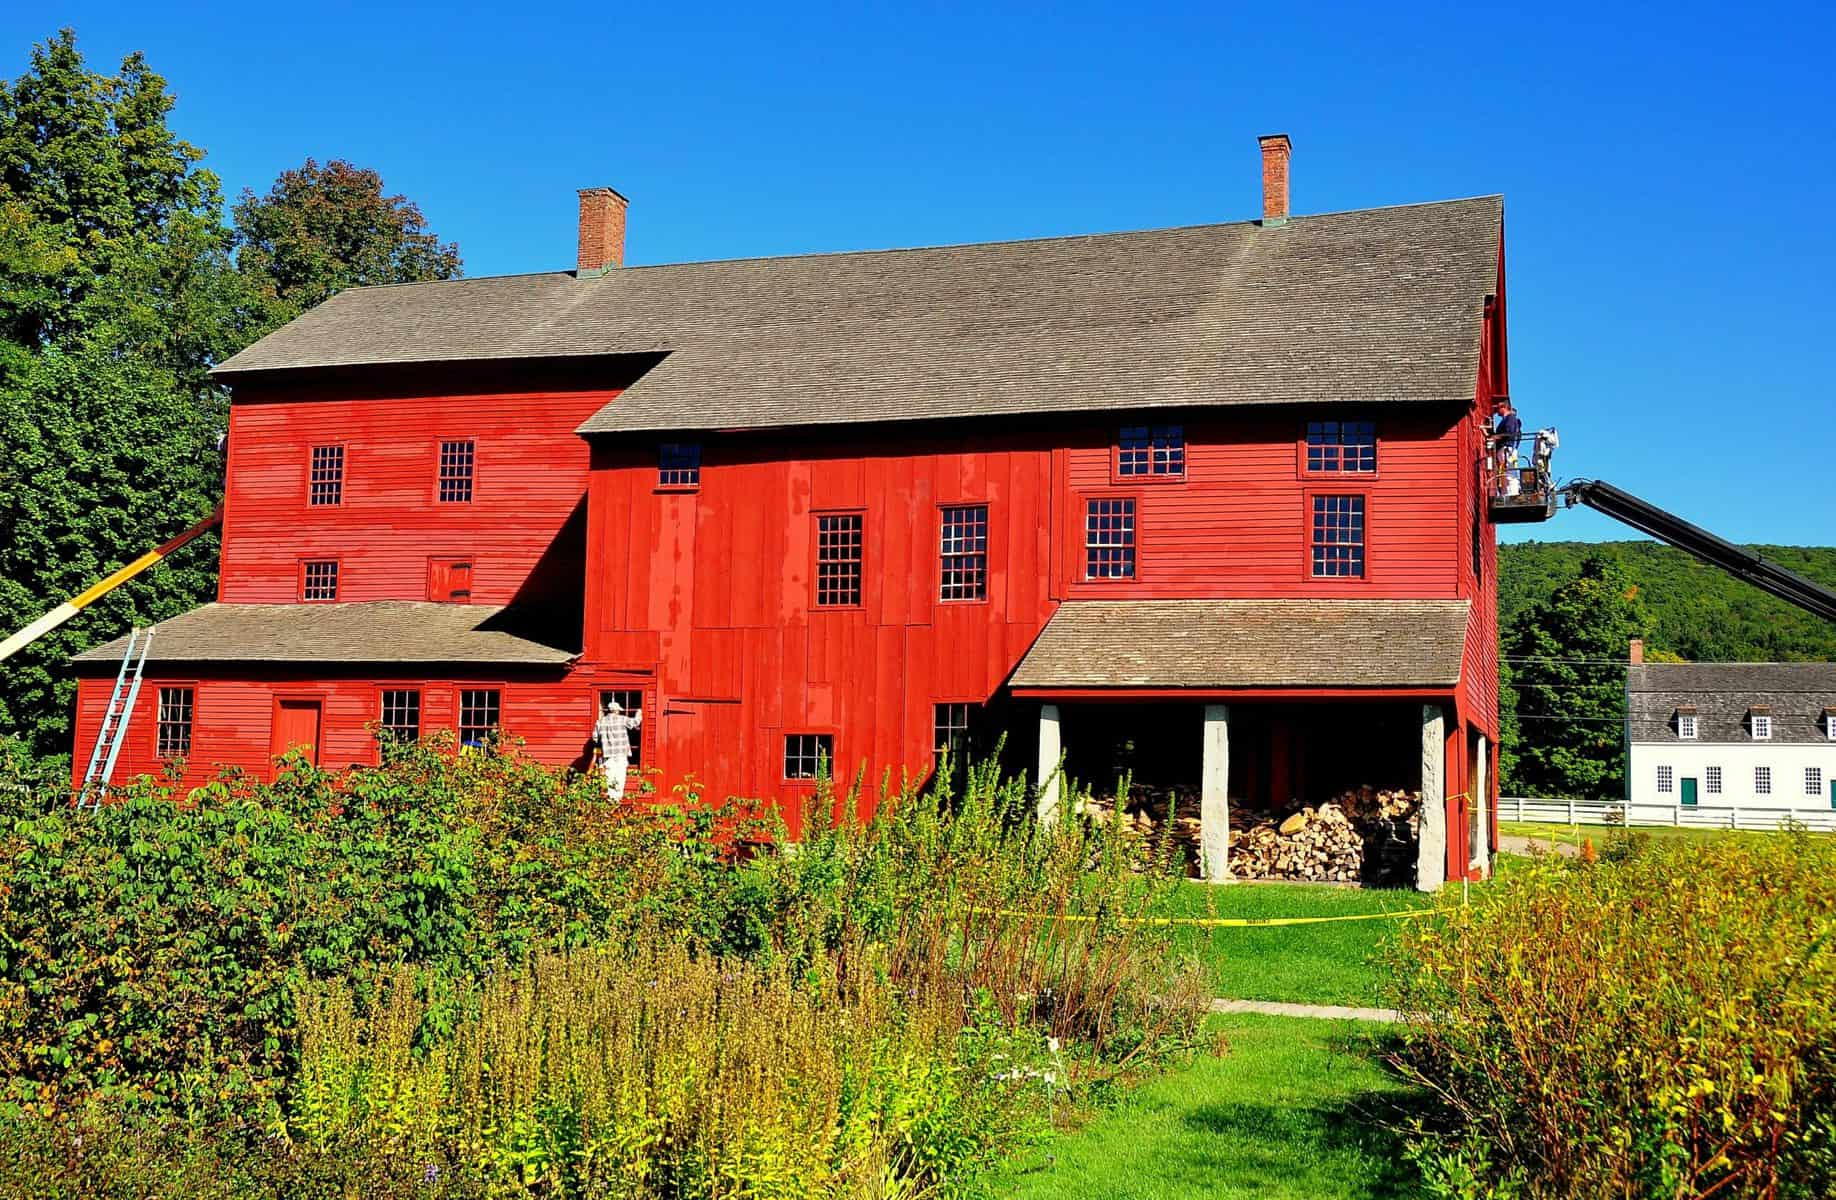 Workers on cherry pickers and ladders painting the large red 1790 Laundry and Machine shop  at the Hancock Shaker Village